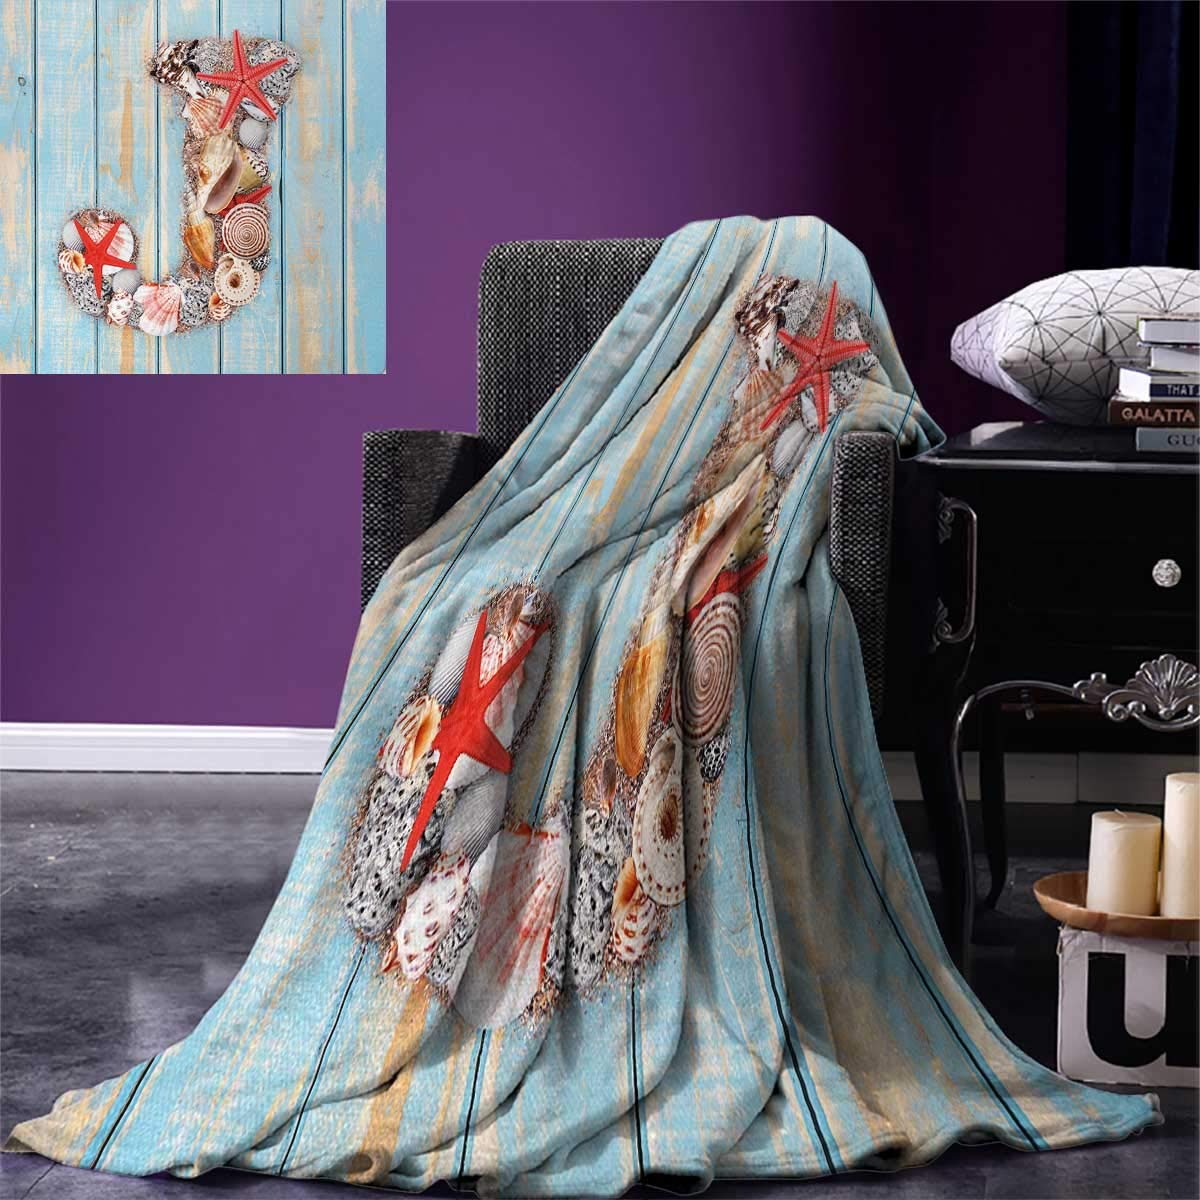 Anniutwo Letter J Warm Microfiber All Season Blanket Summer Holiday on Tropical Beach Theme J Rustic Old Wood Planks Print Image Blanket 62''x60'' Pale Blue Ivory Dark Coral